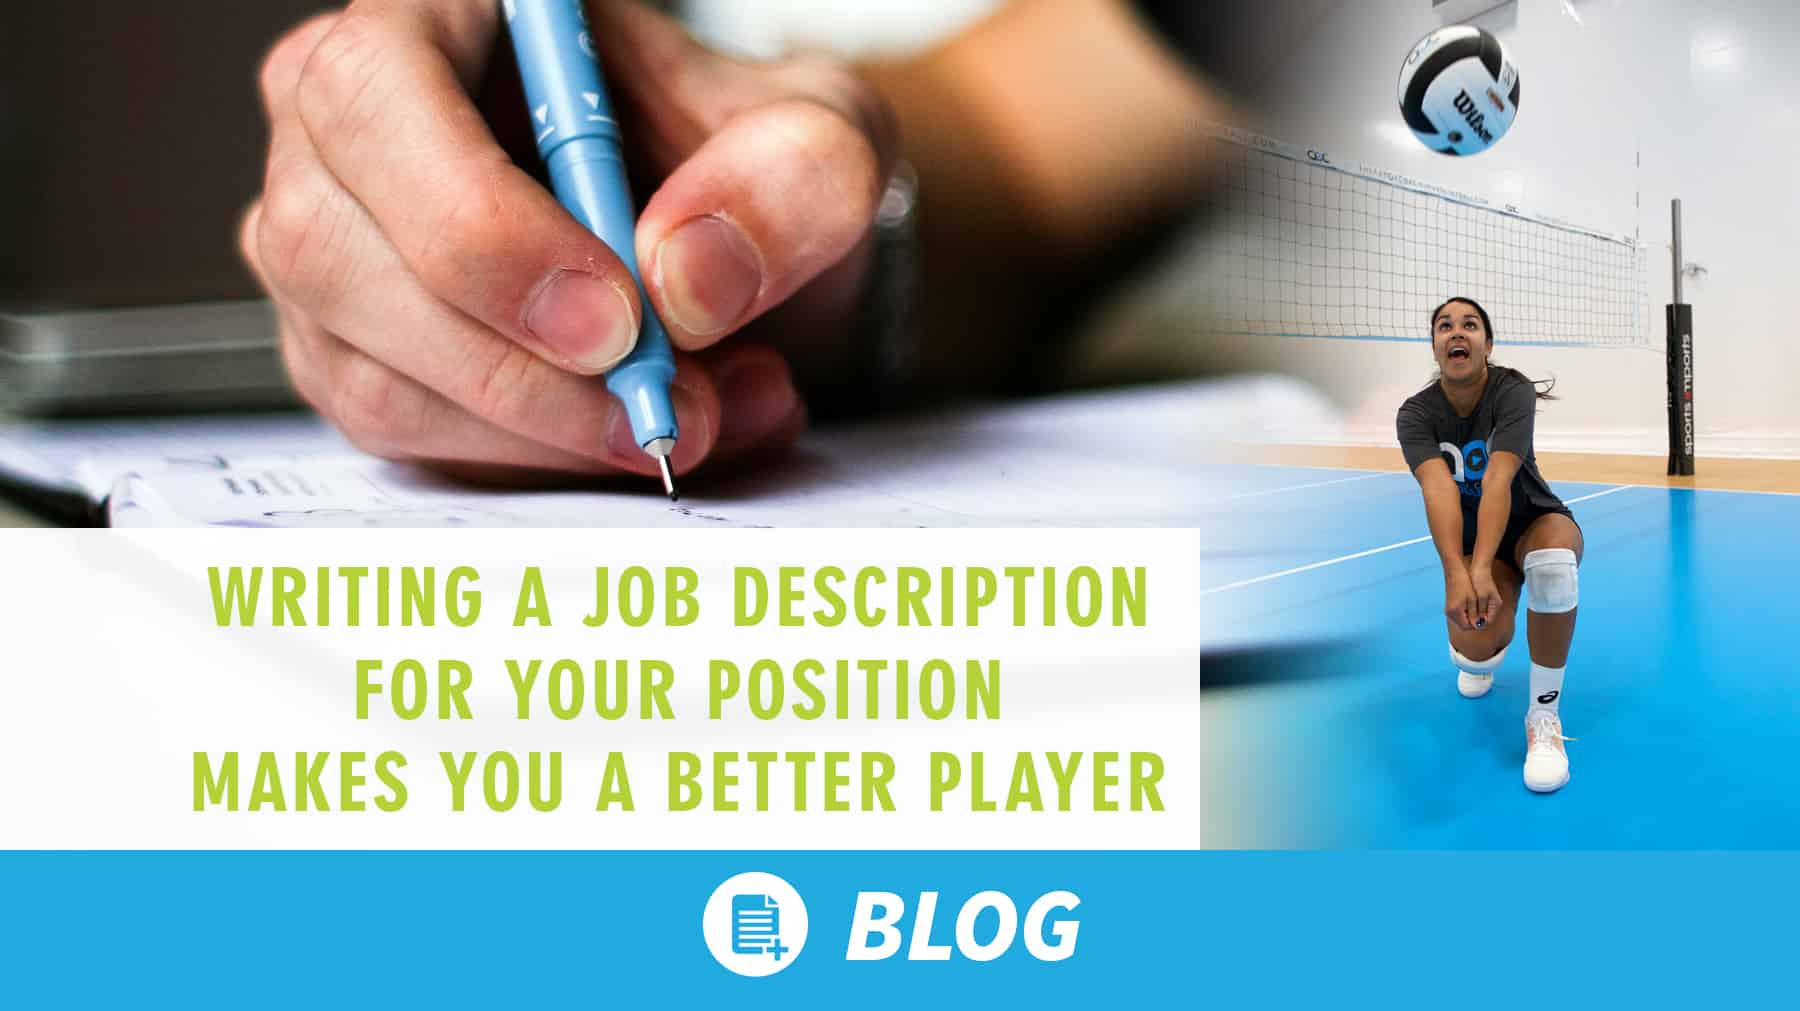 Writing a job description for your position makes you a better player